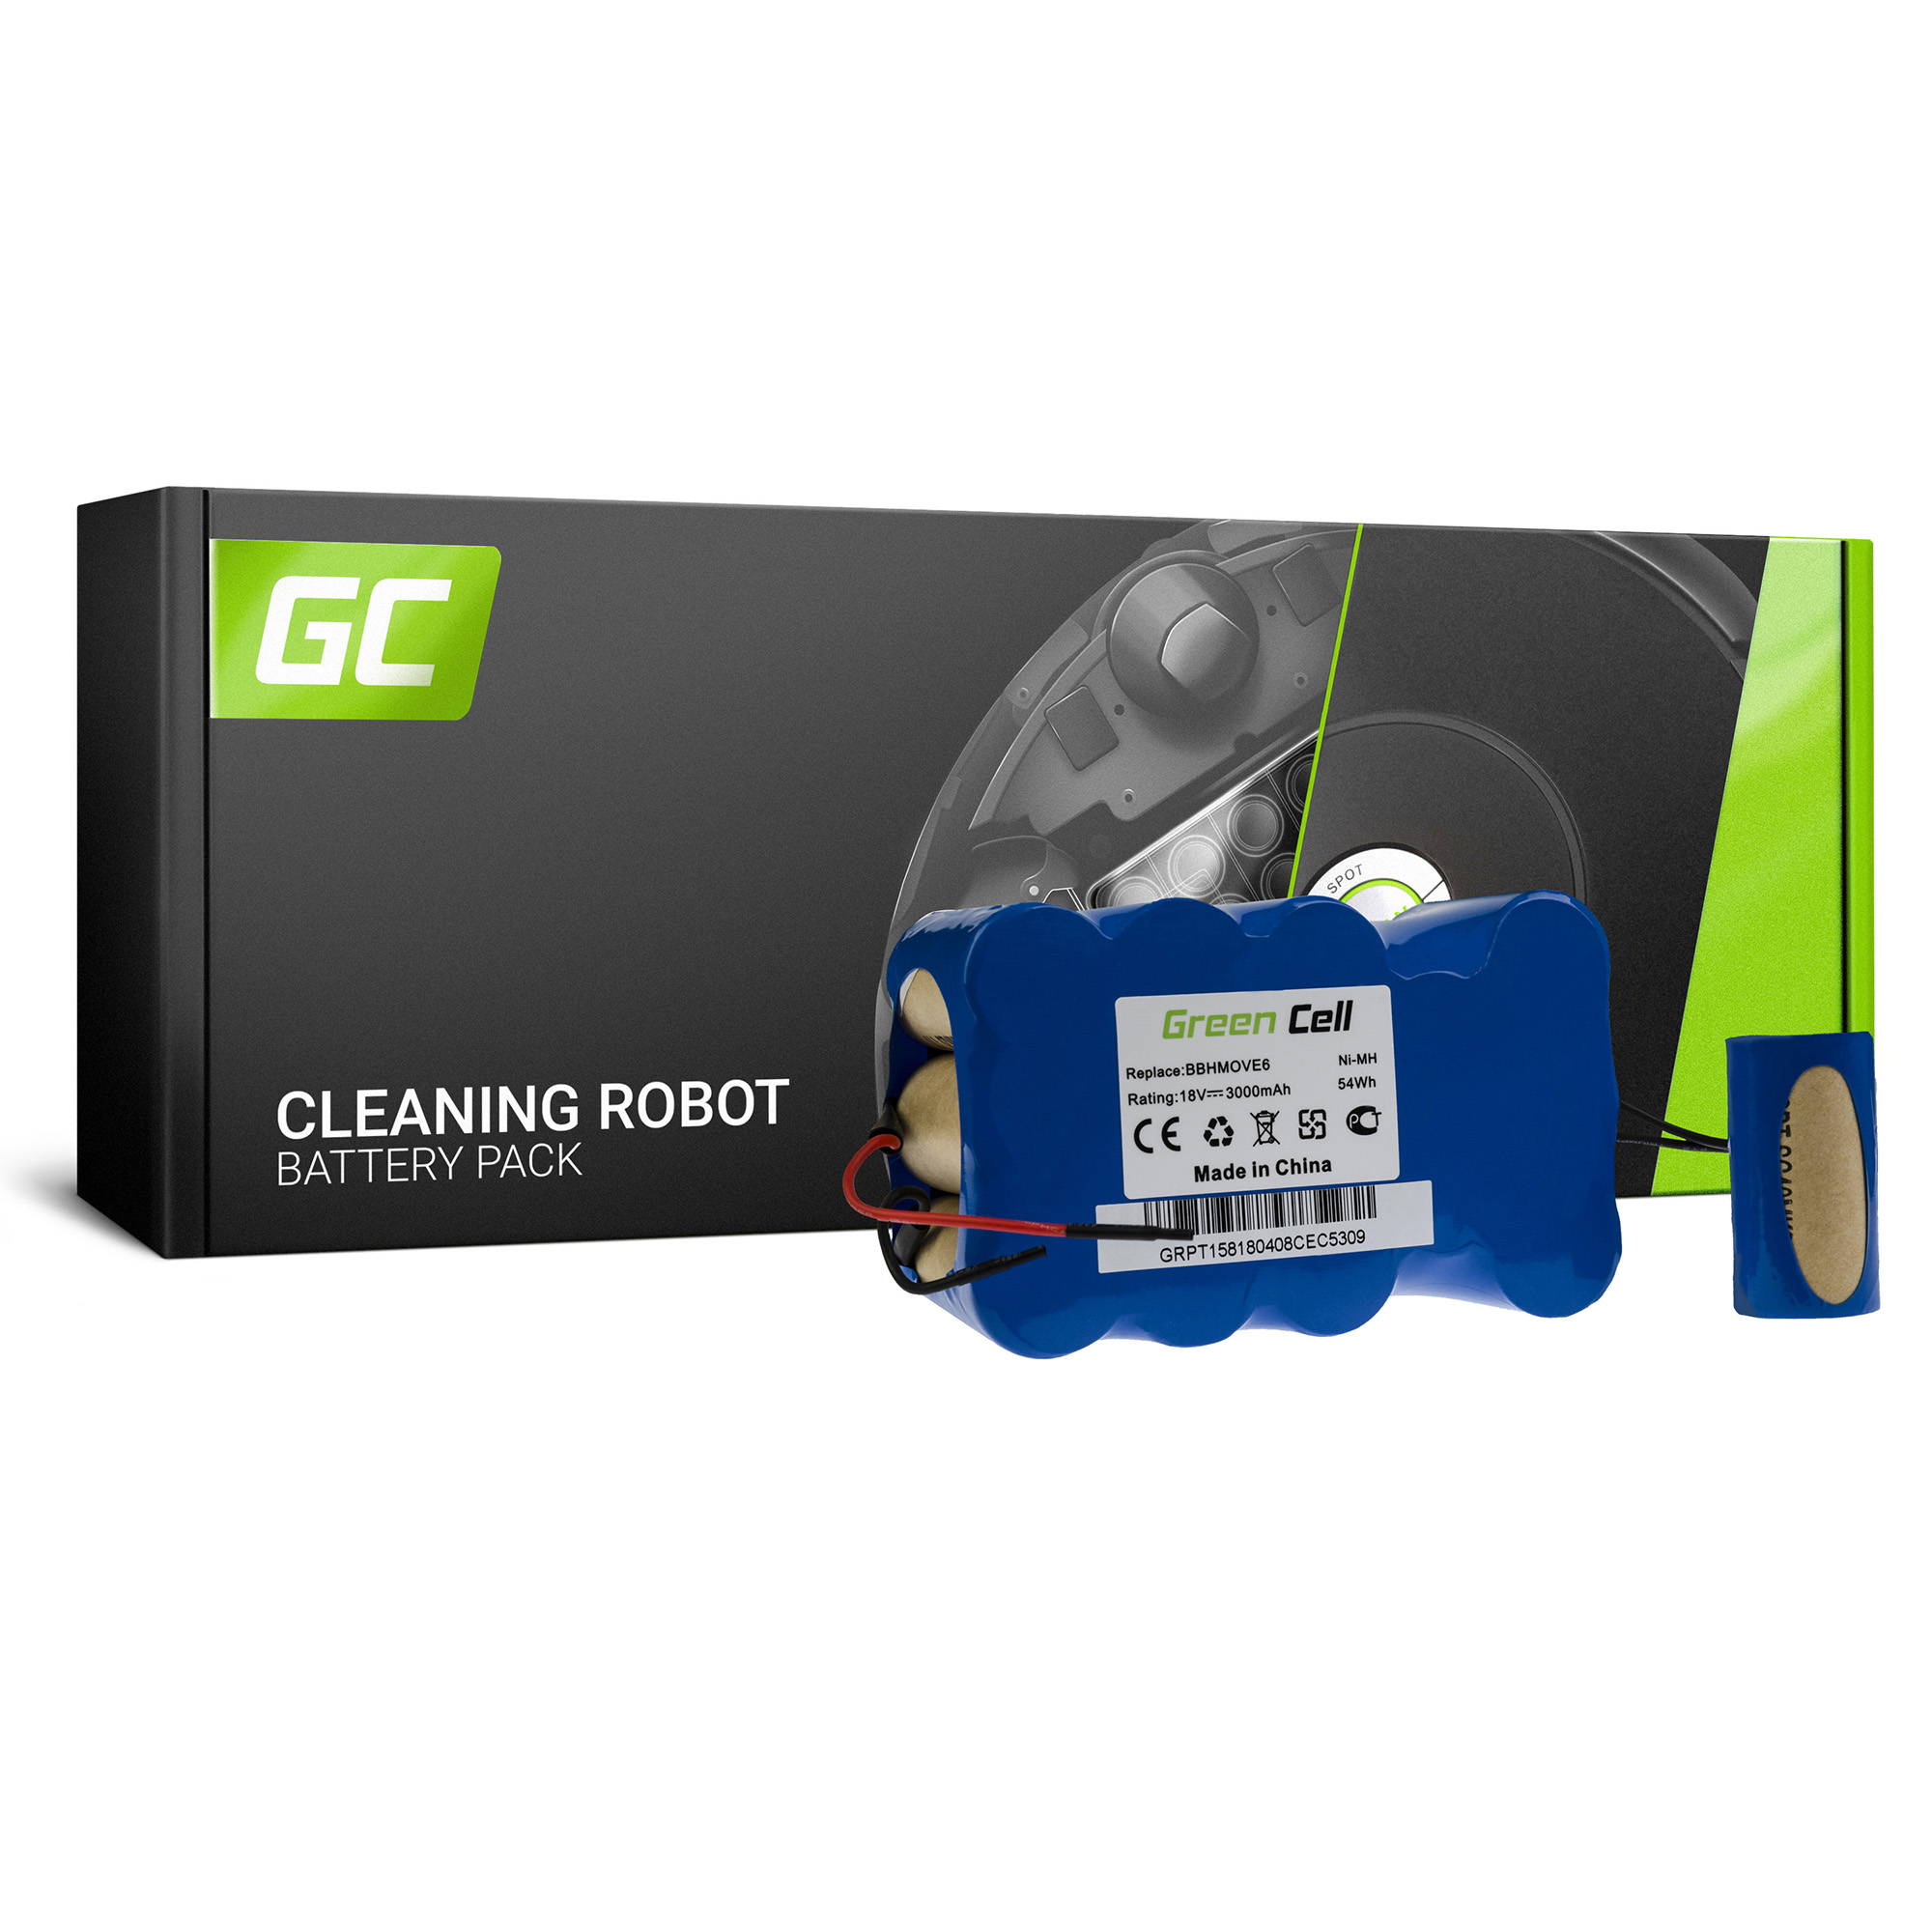 1 battery photo gallery